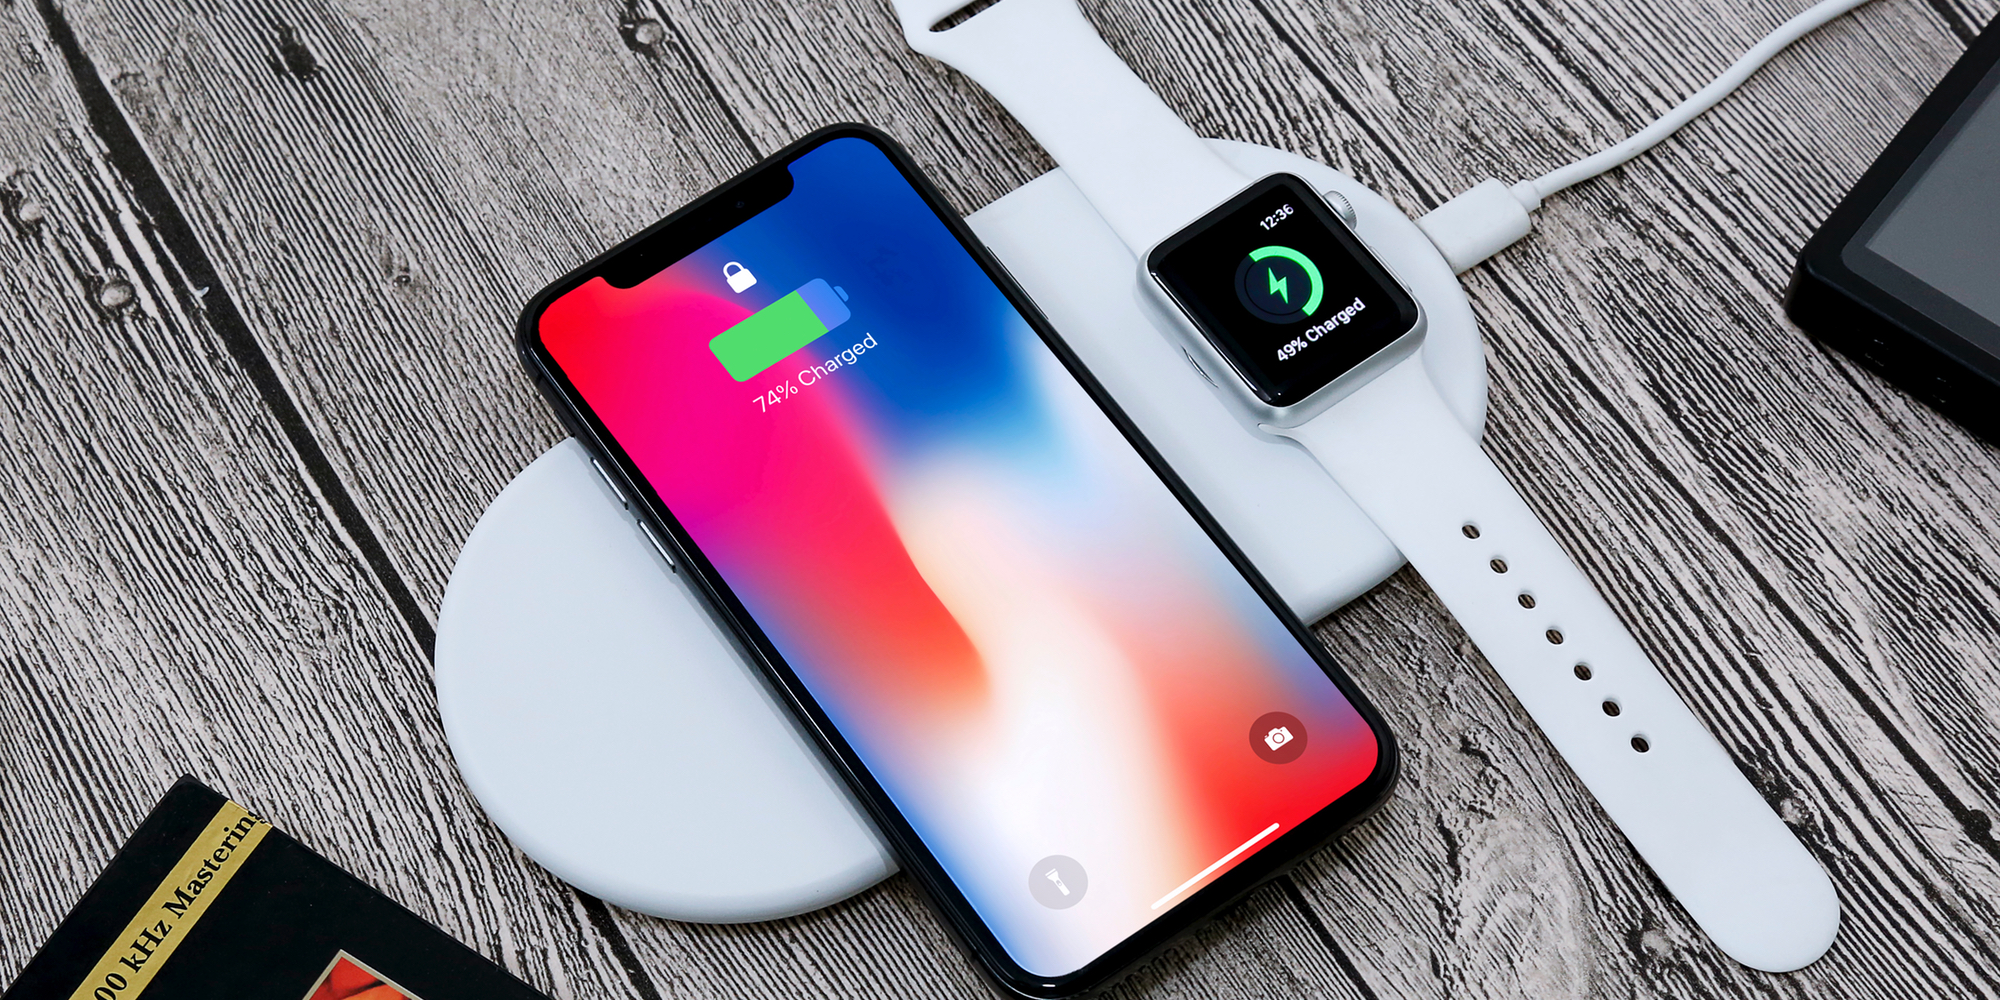 This Qi wireless charger beats Apple to the punch, powers iPhone & Watch simultaneously